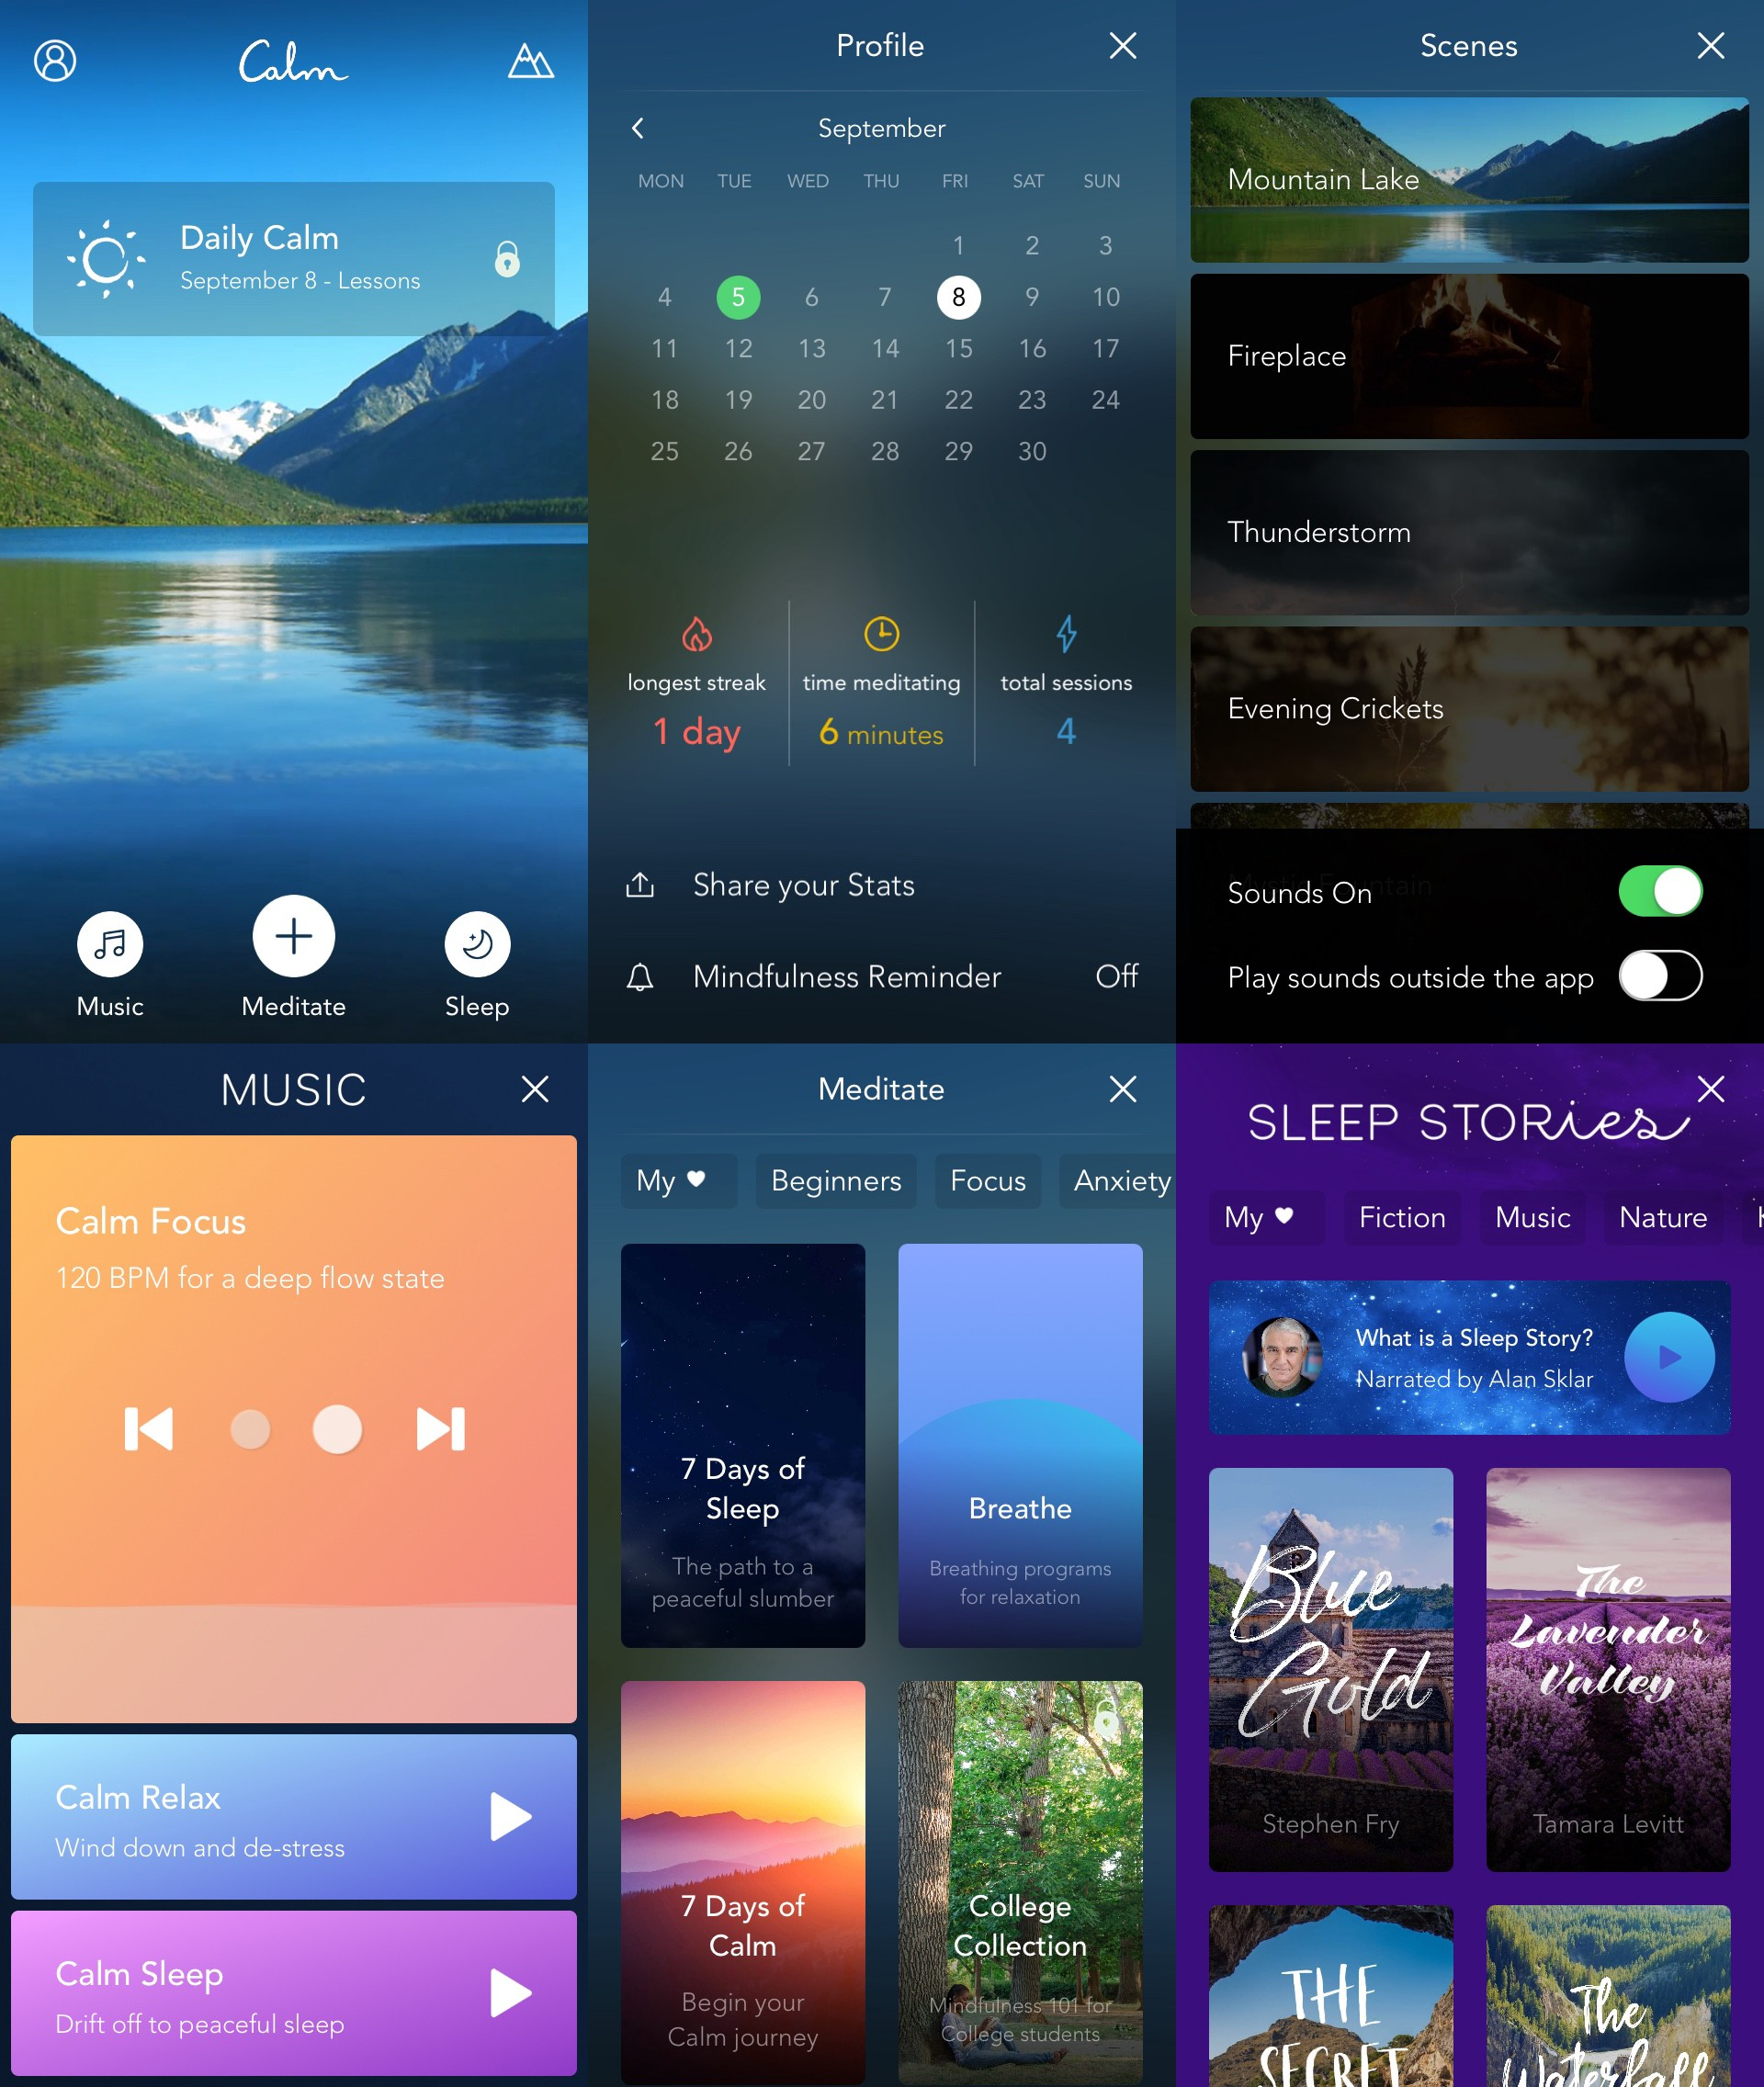 How To Use The Calm App